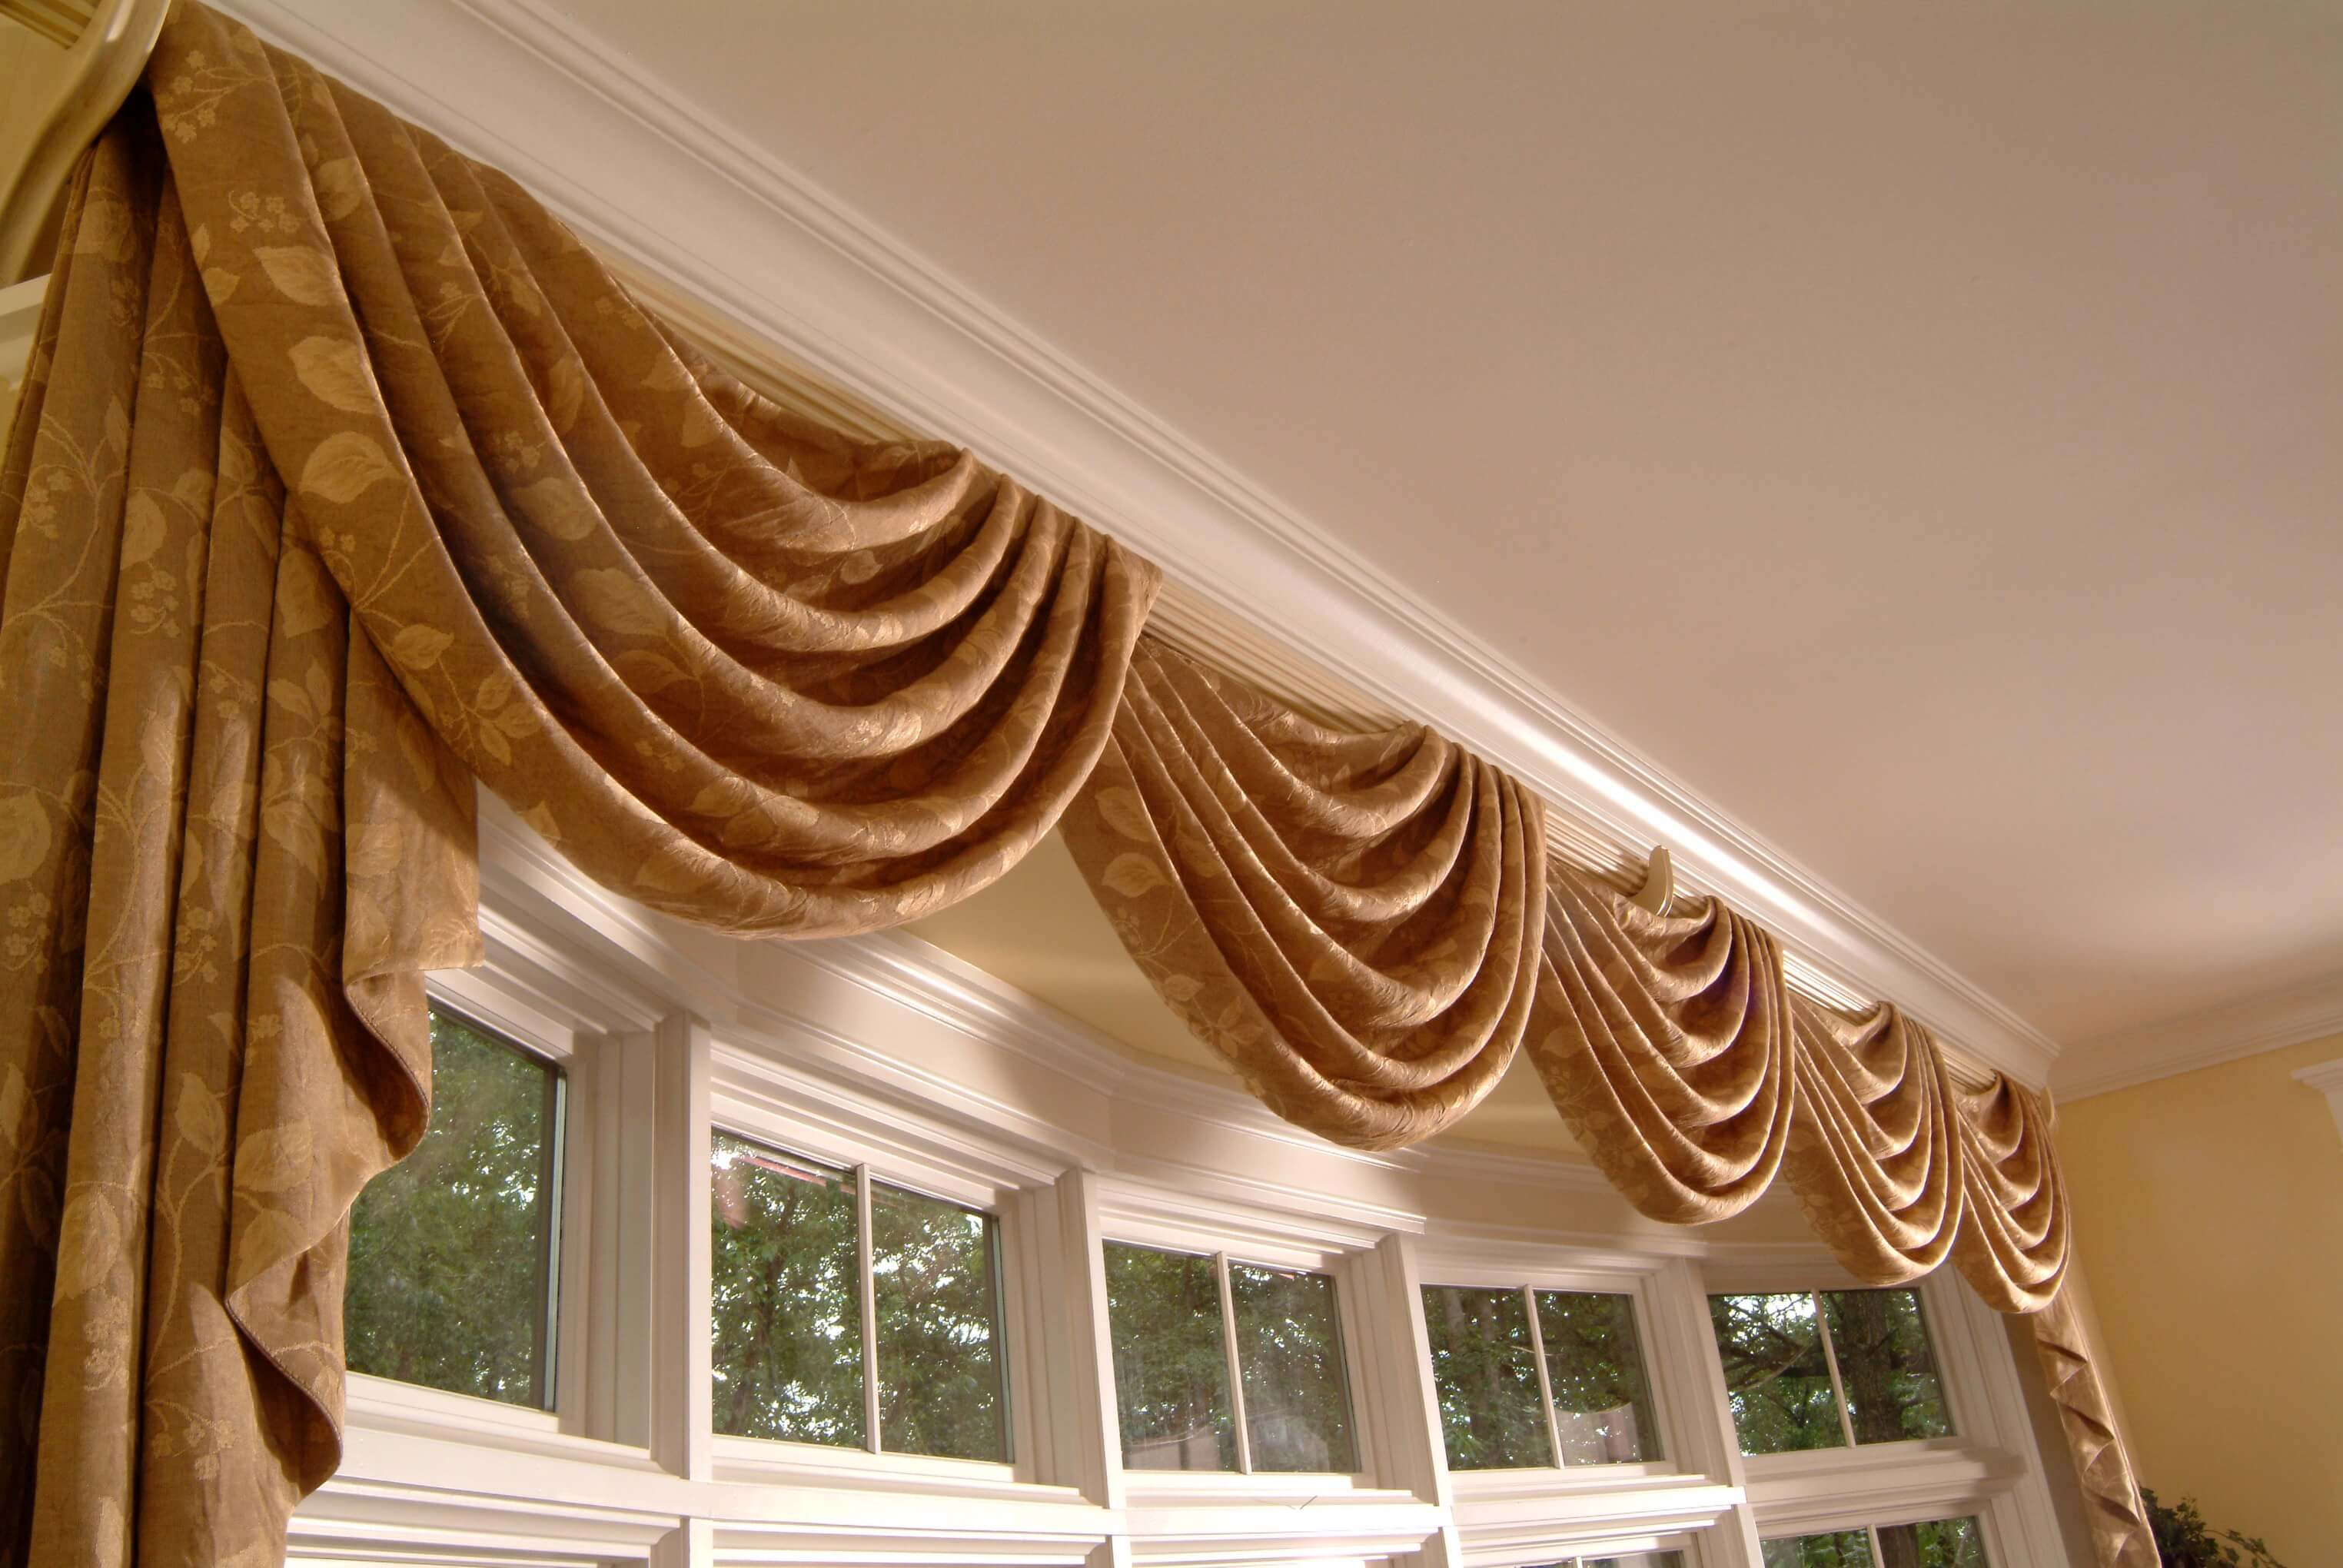 valance drapery nimbus valances t window treatments curtains and drapes fan stripe treatment ideas box